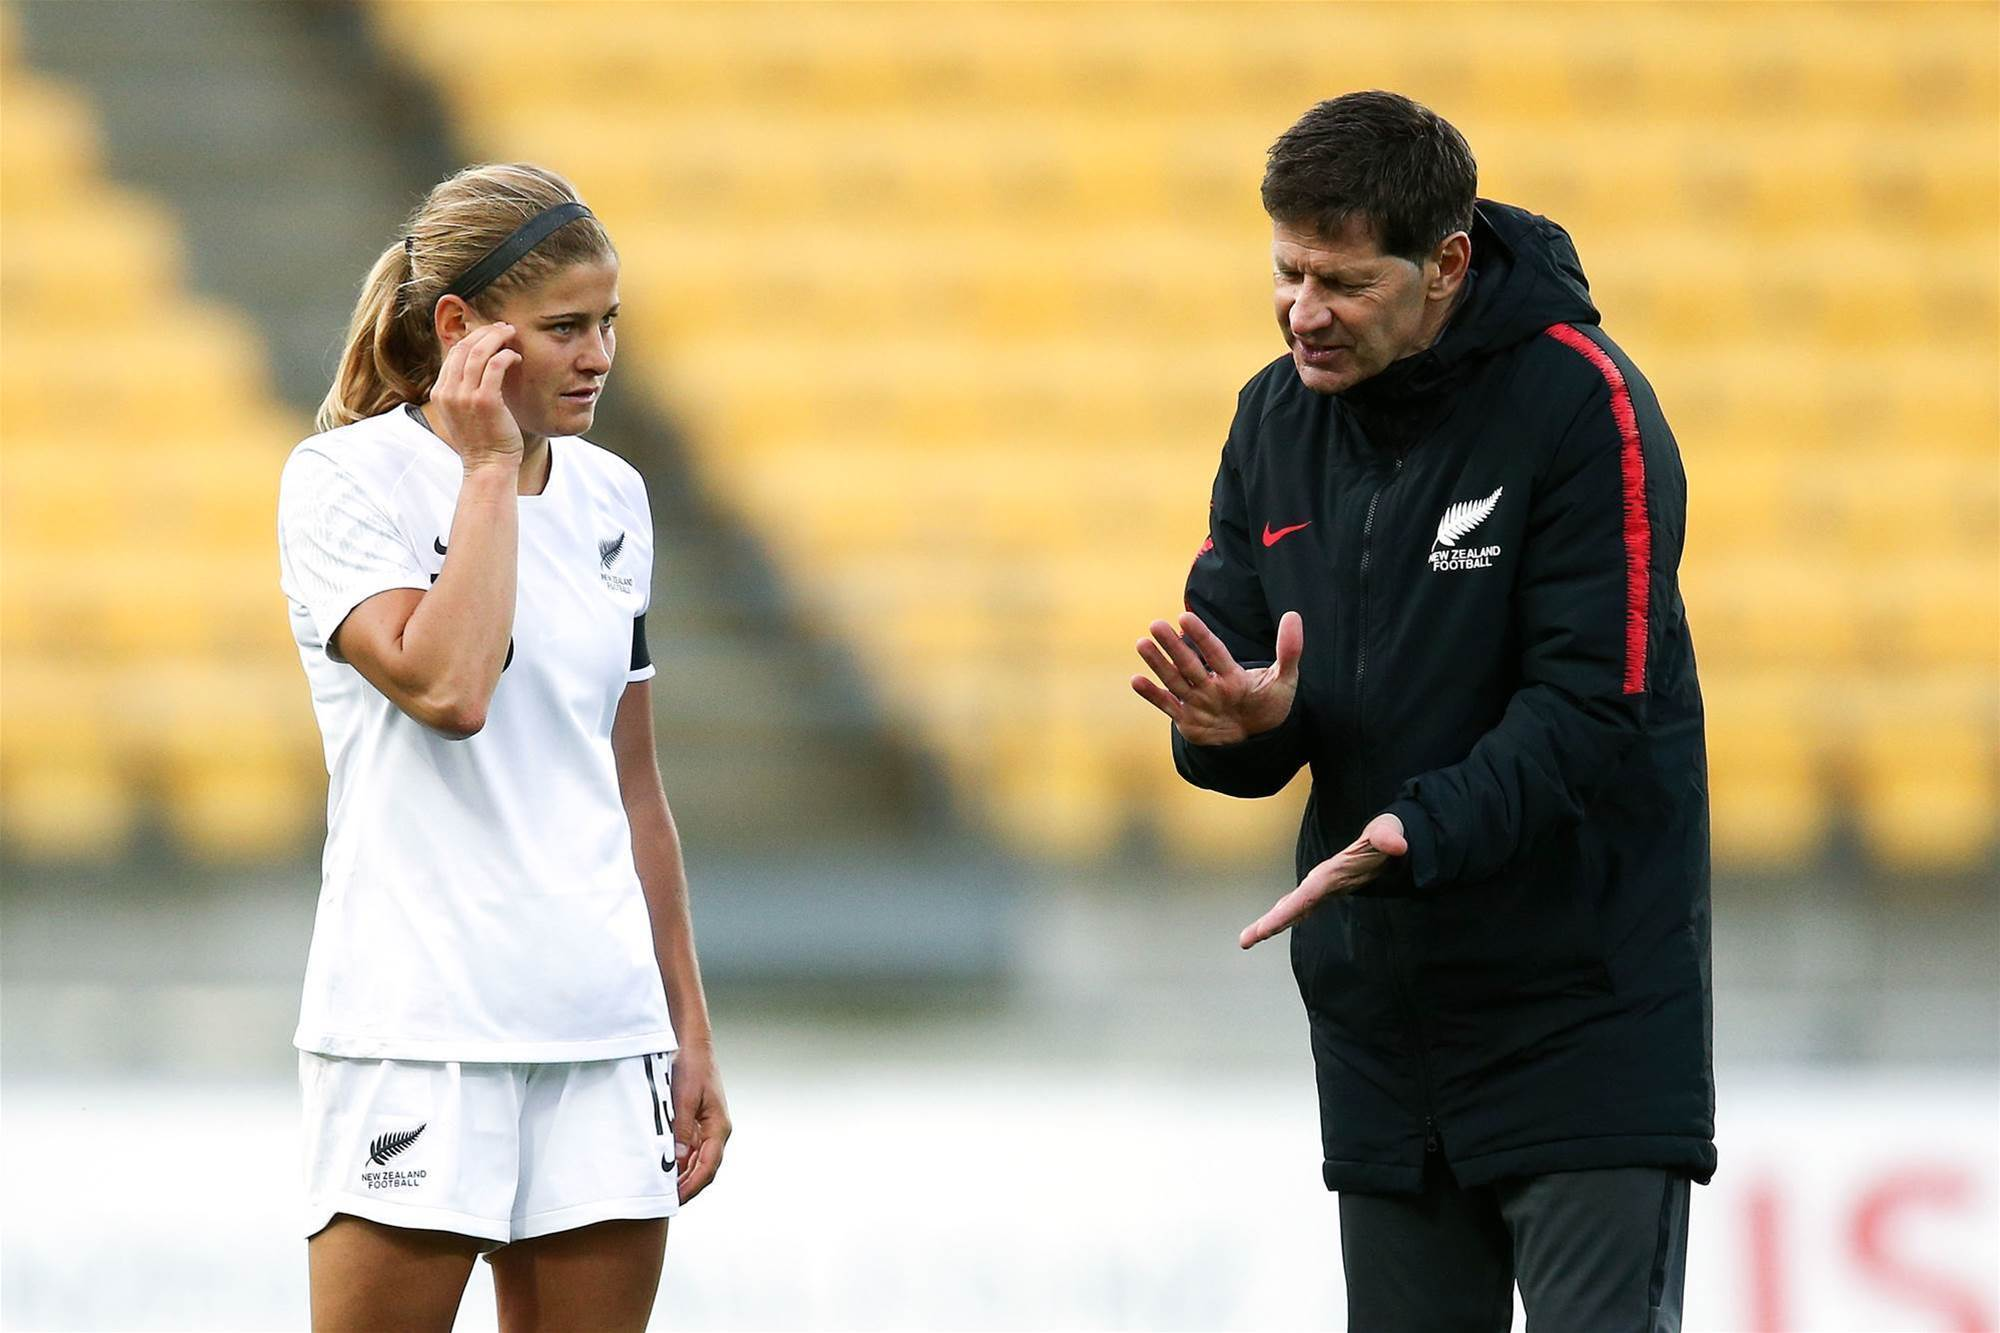 Ferns coach quits over player backlash